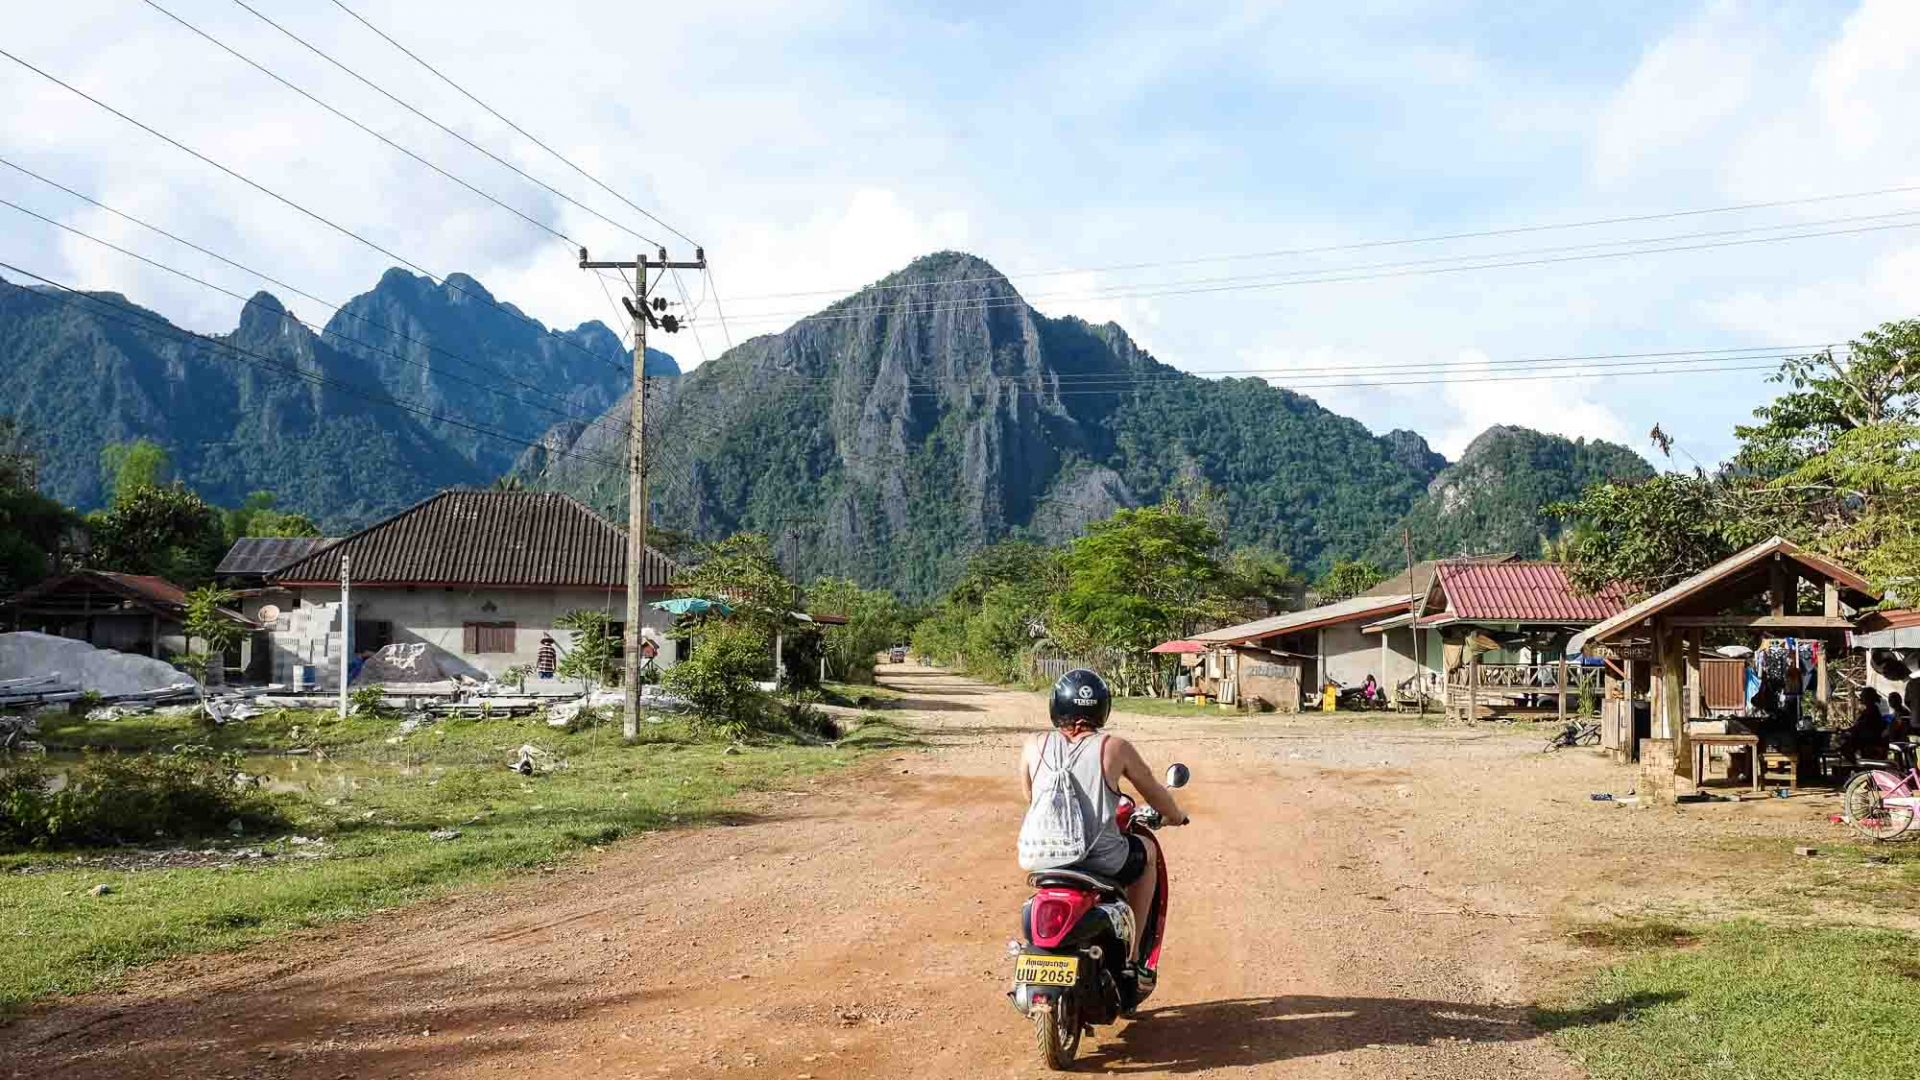 Riding through a rural Laos village on a scooter.